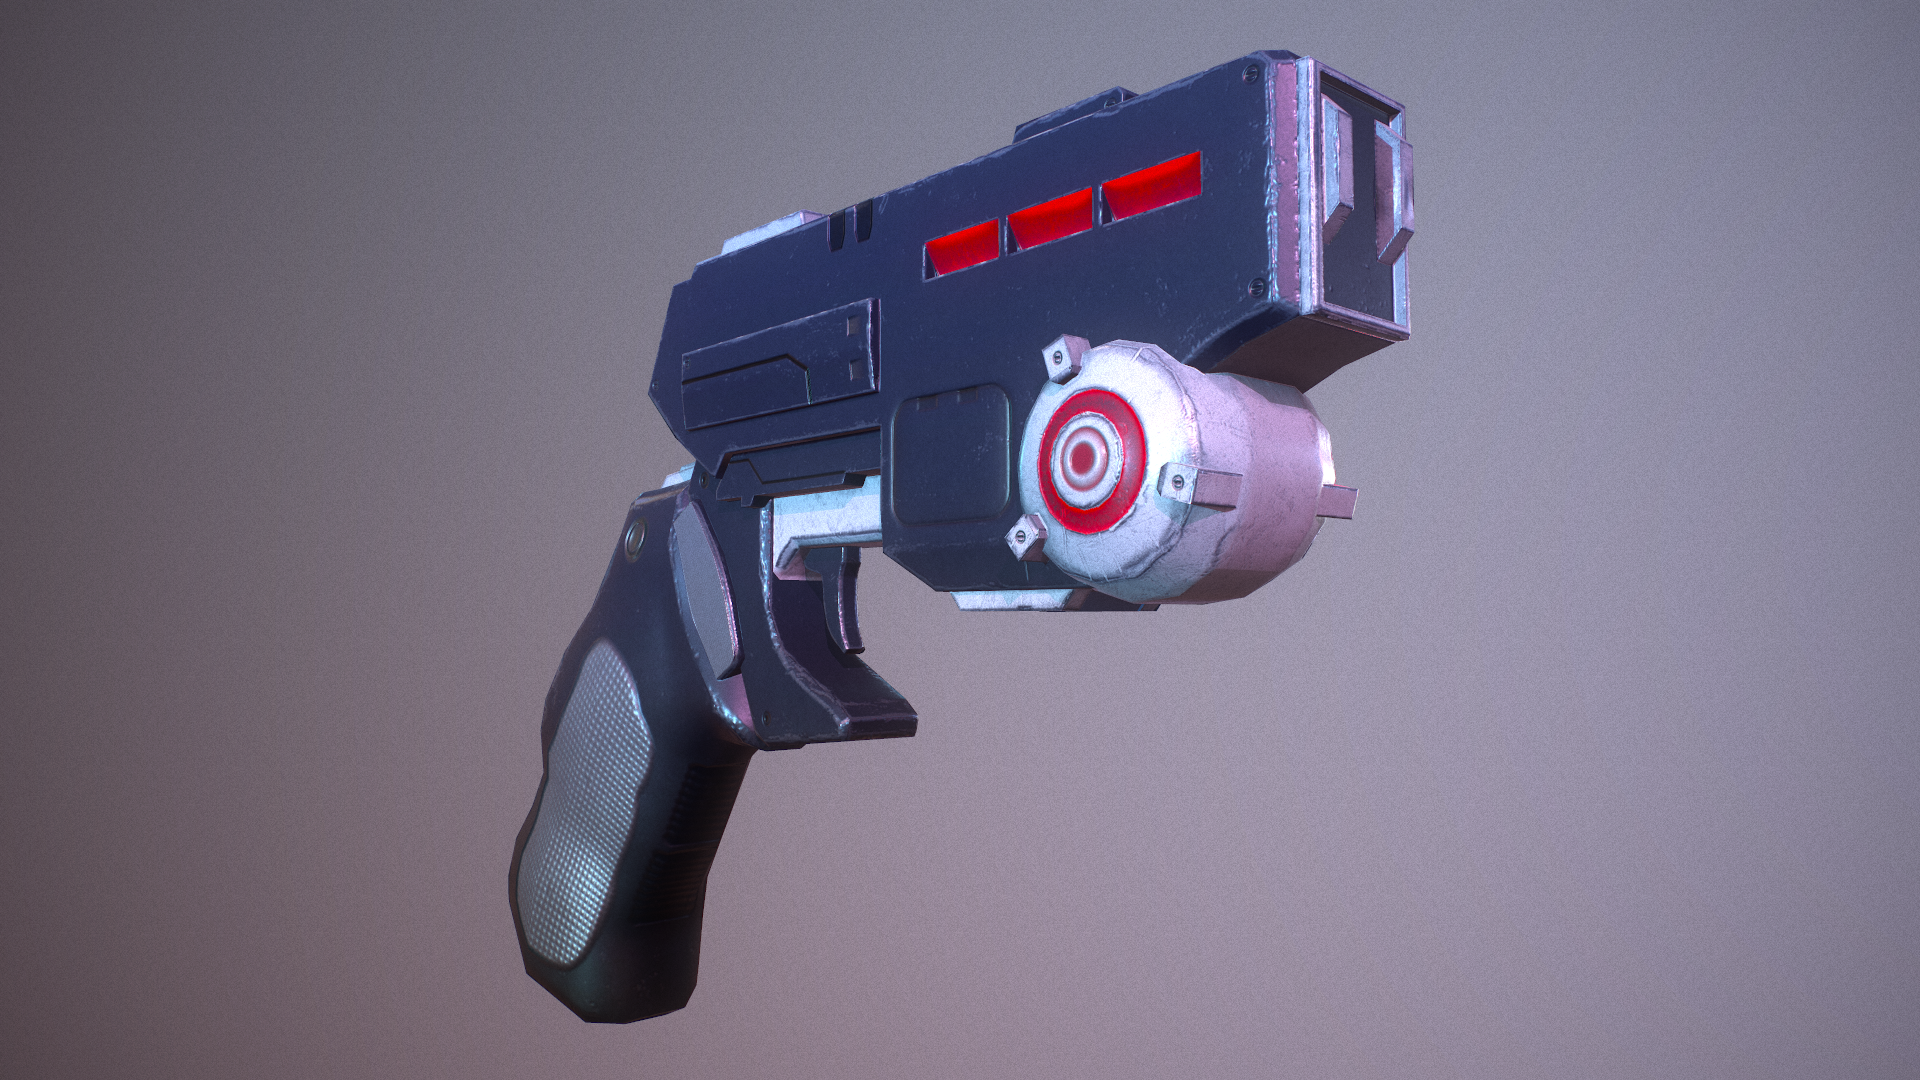 Low poly sci fi weapons, props